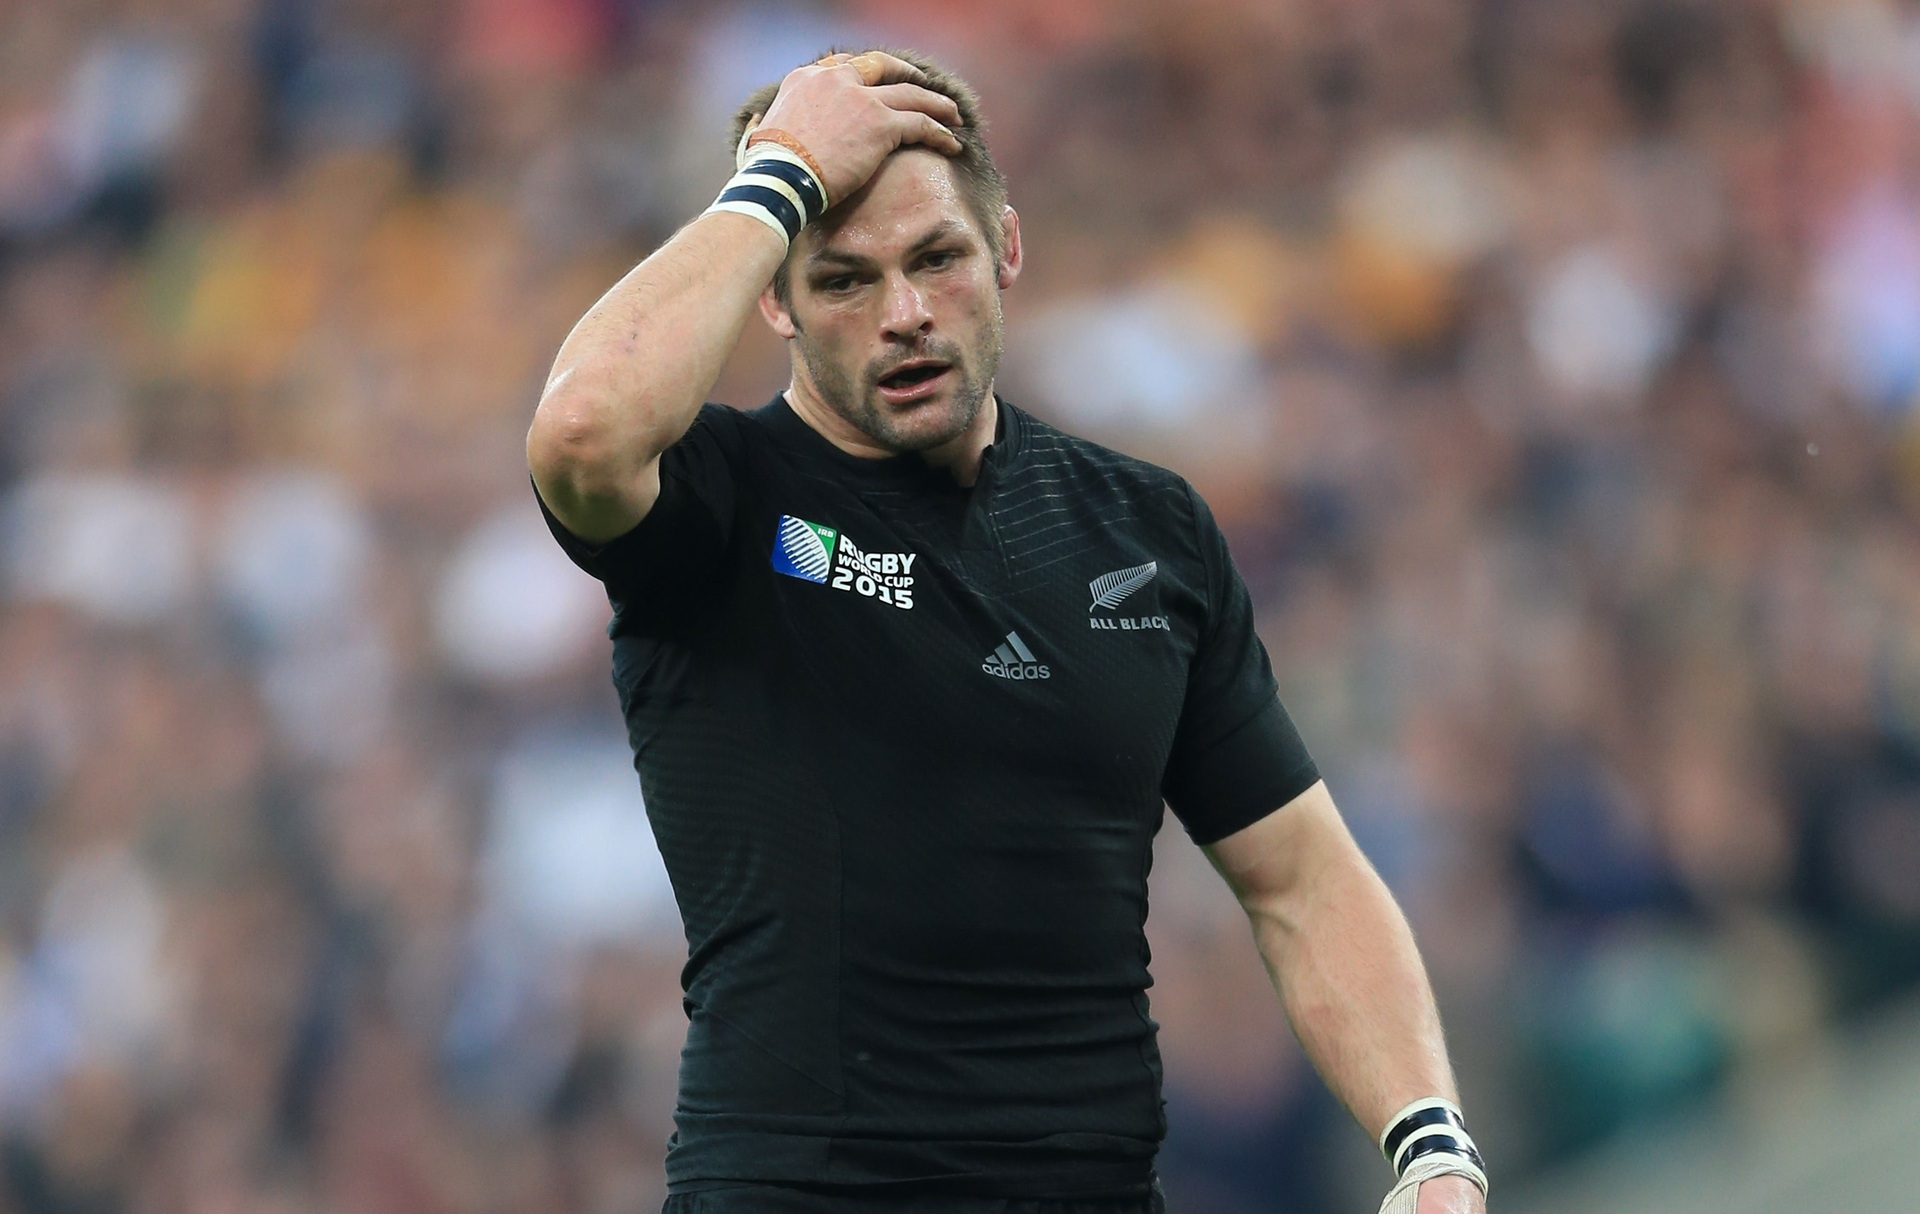 Rugby: Richie McCaw opens up about battling mental demons during All Blacks career